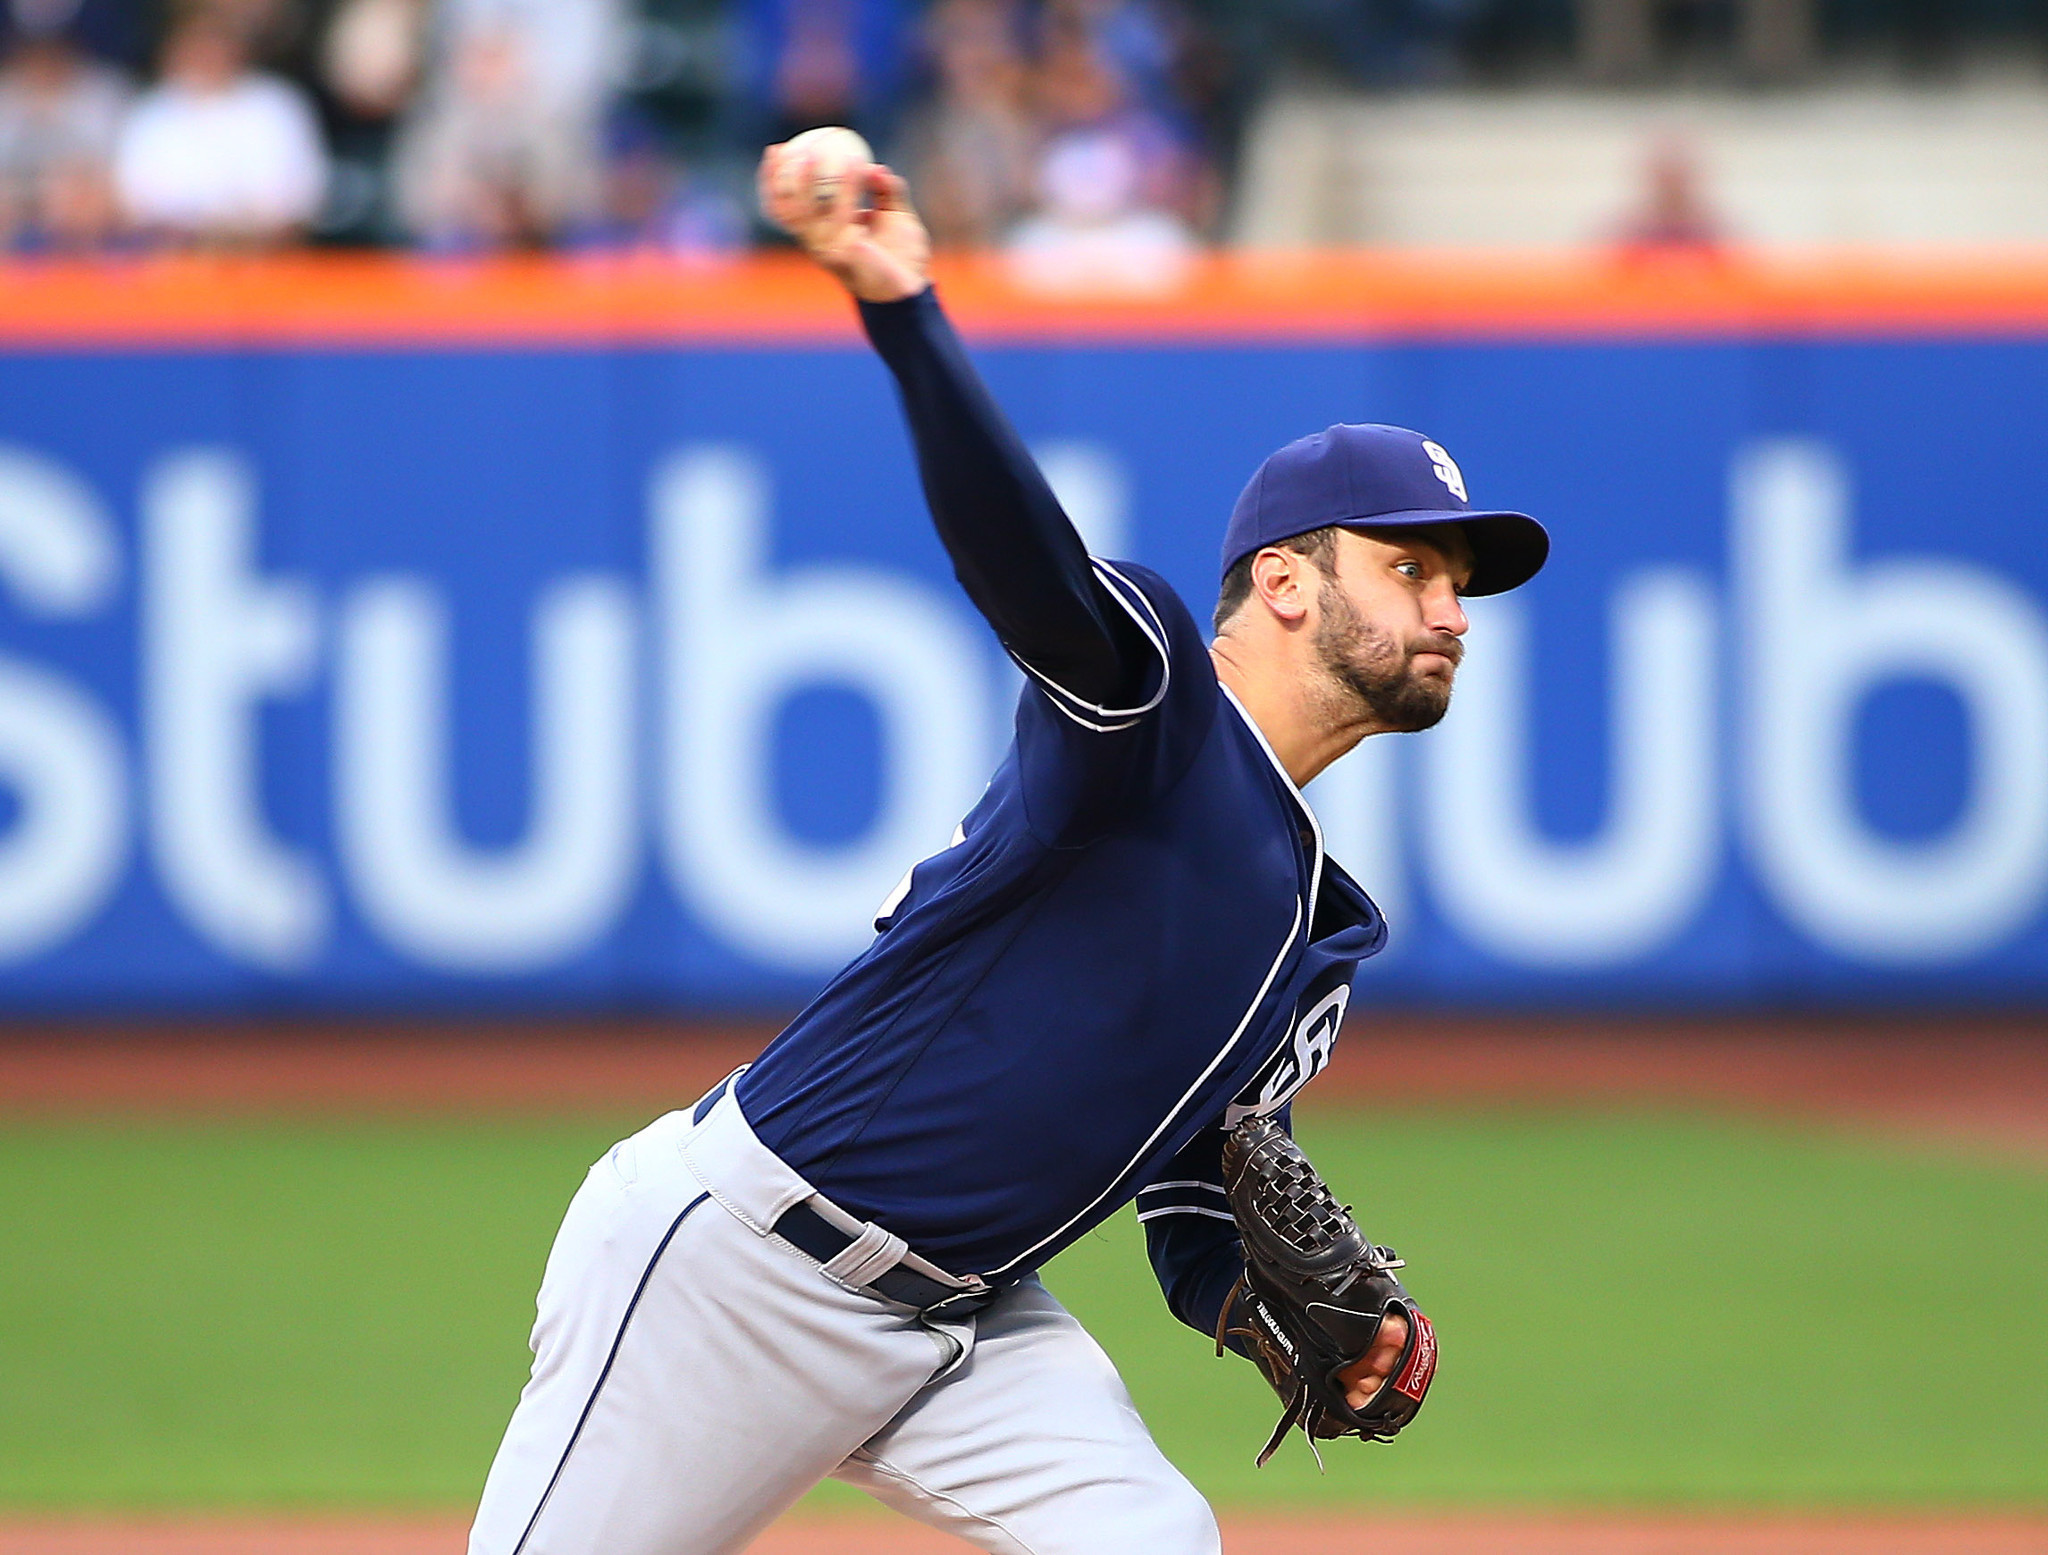 Sd-sp-padres-mets-20170524